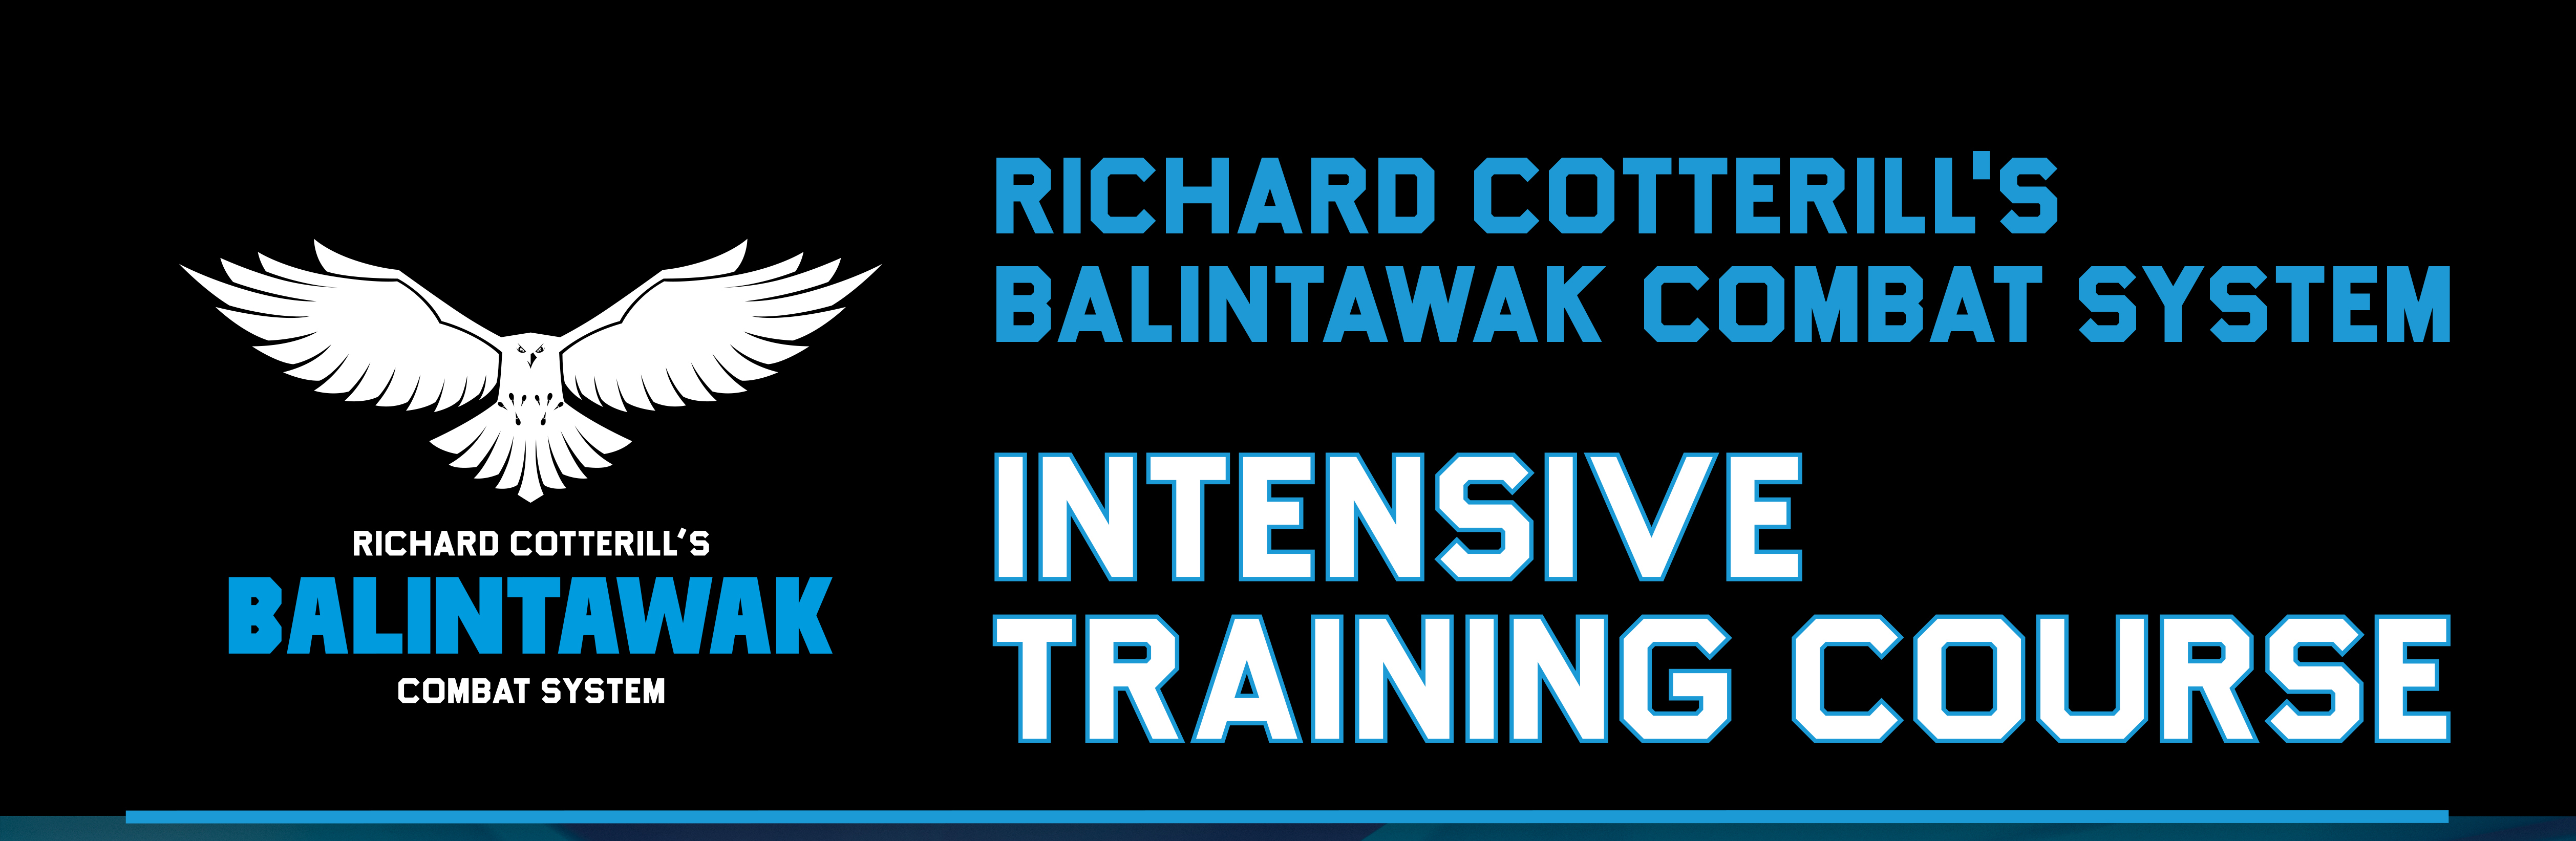 Intensive Training Course